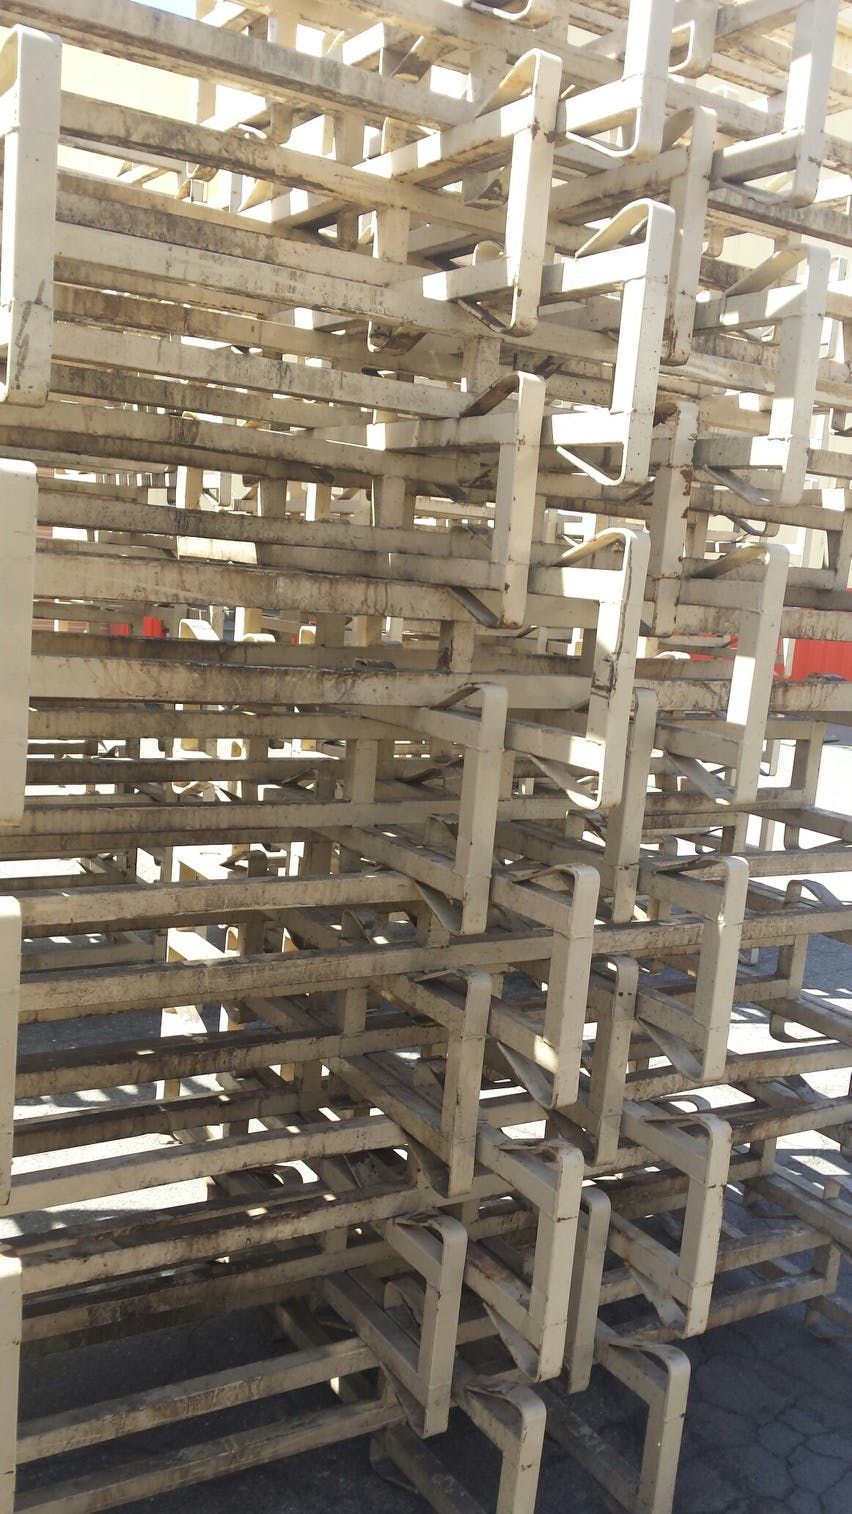 Grade C - 4 Barrel Racks - sold by Country Connection